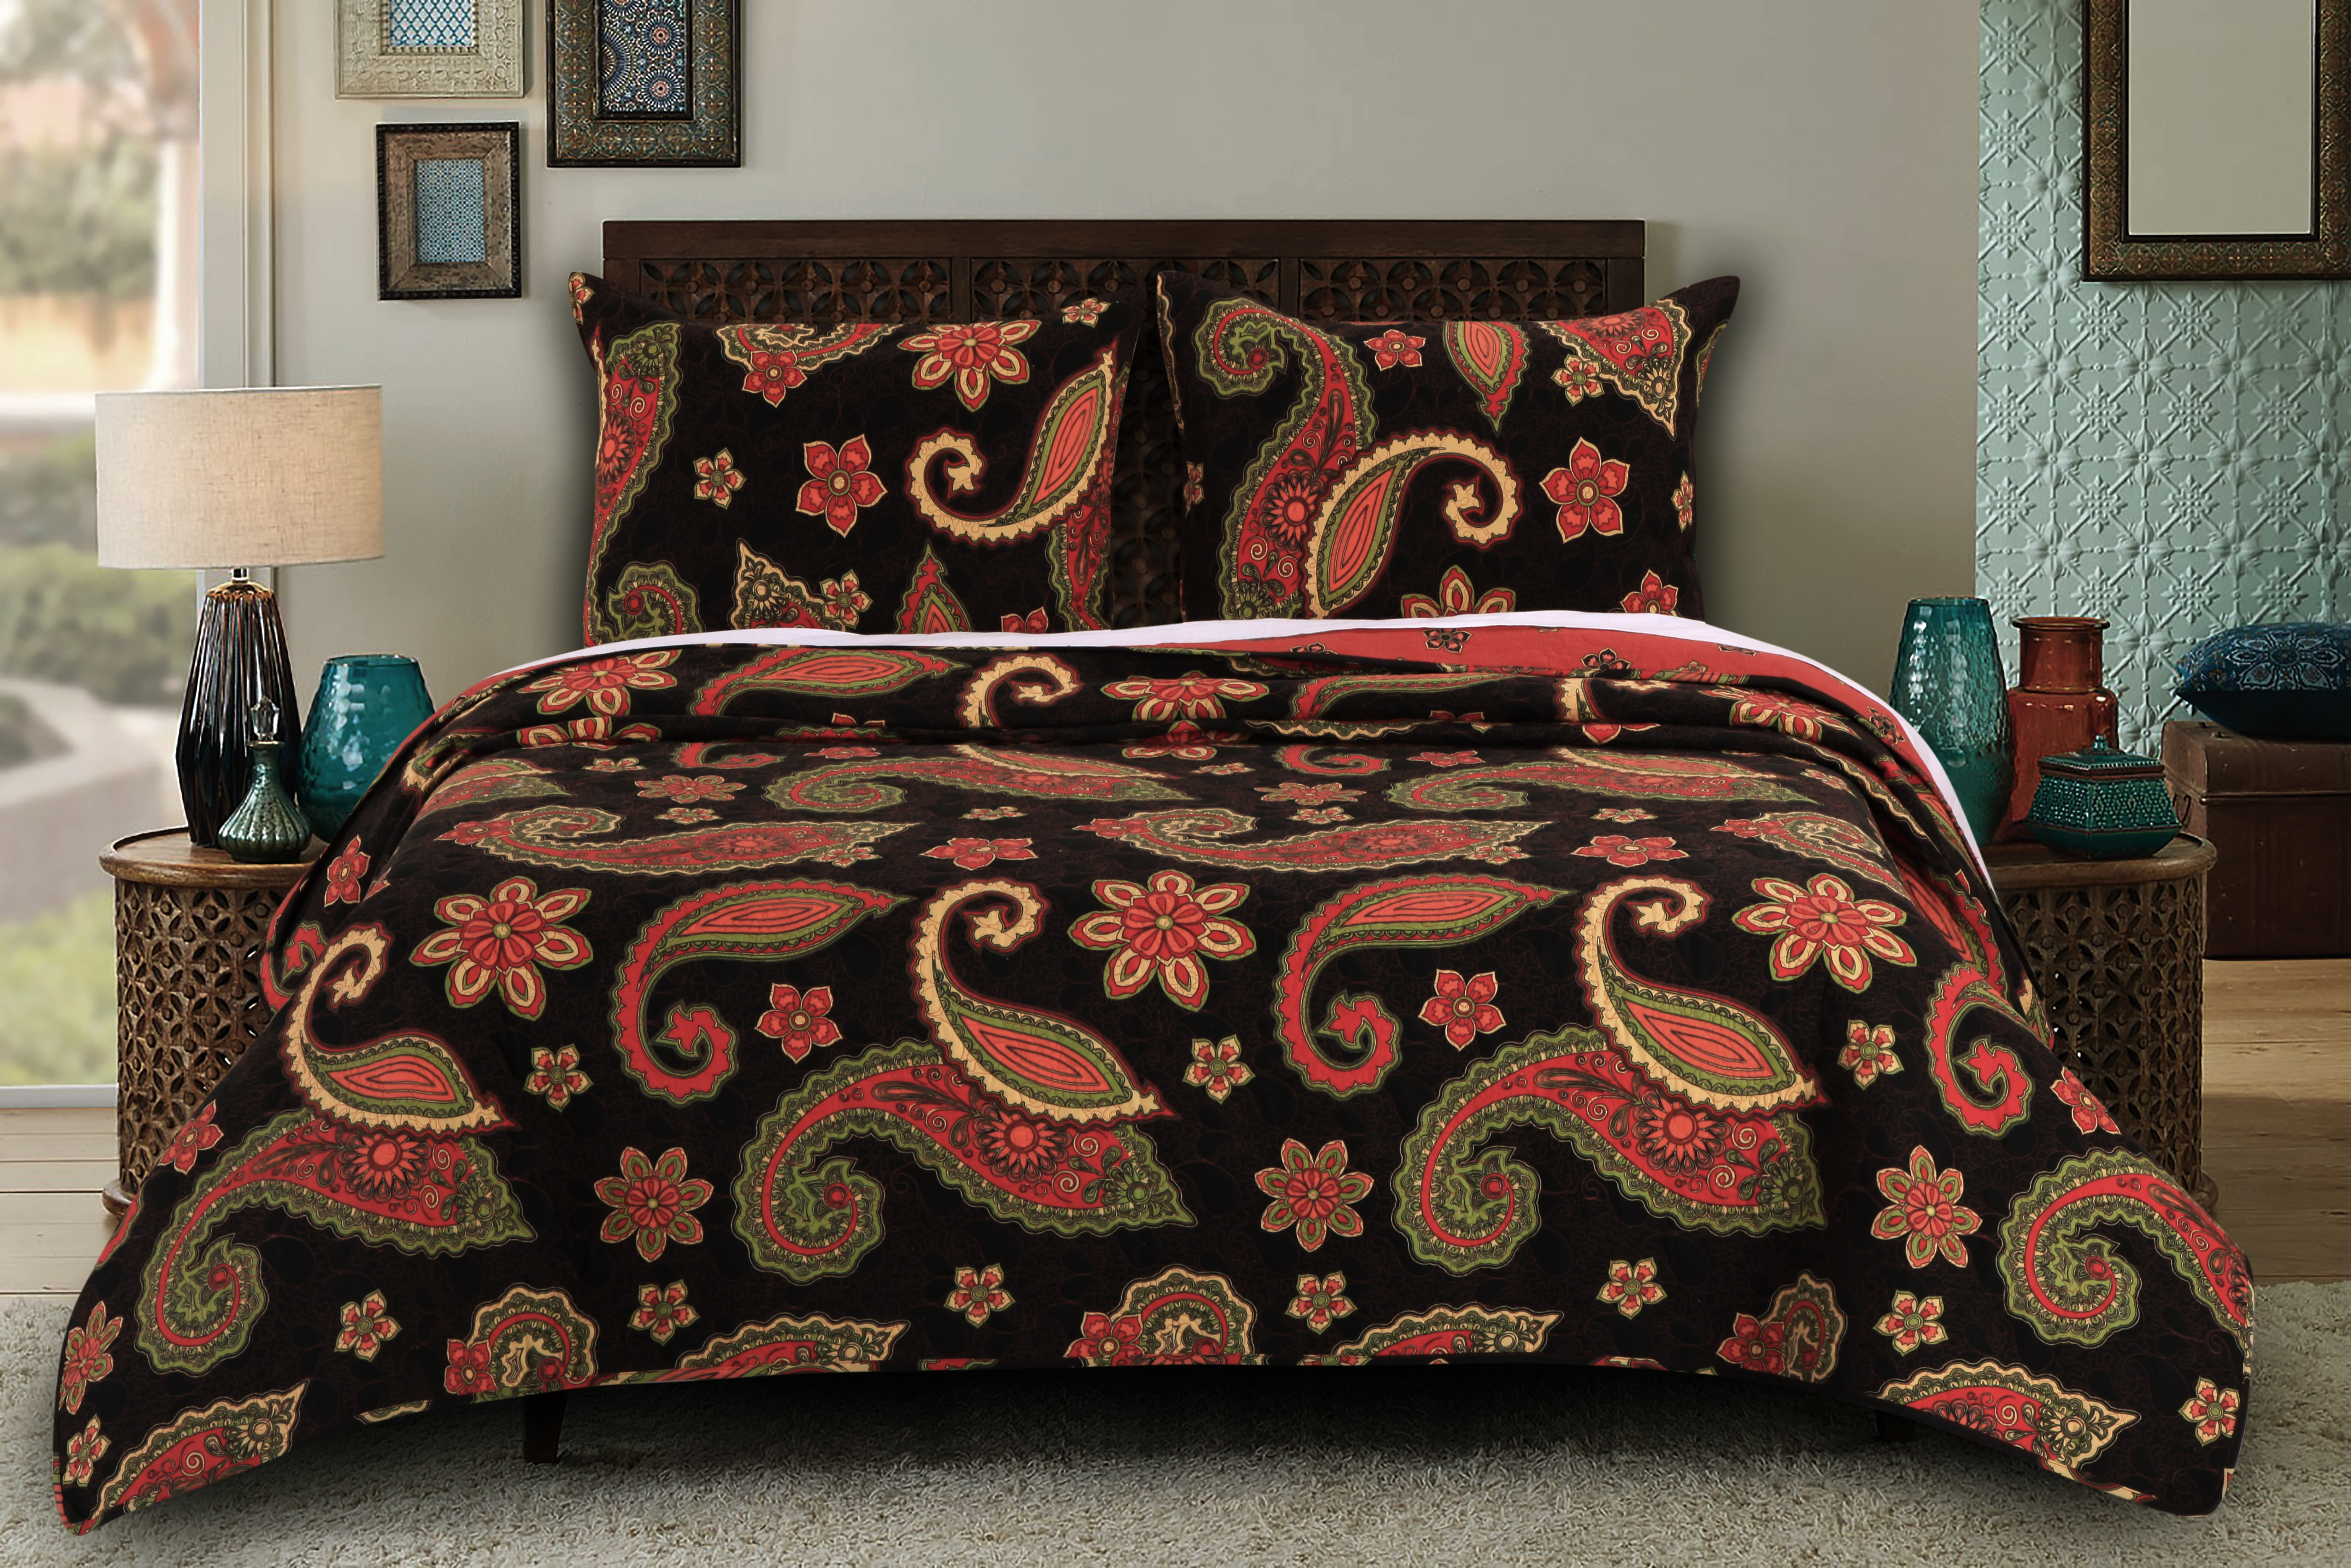 Midnight Paisley Multi Colored King Size Quilt Set 3